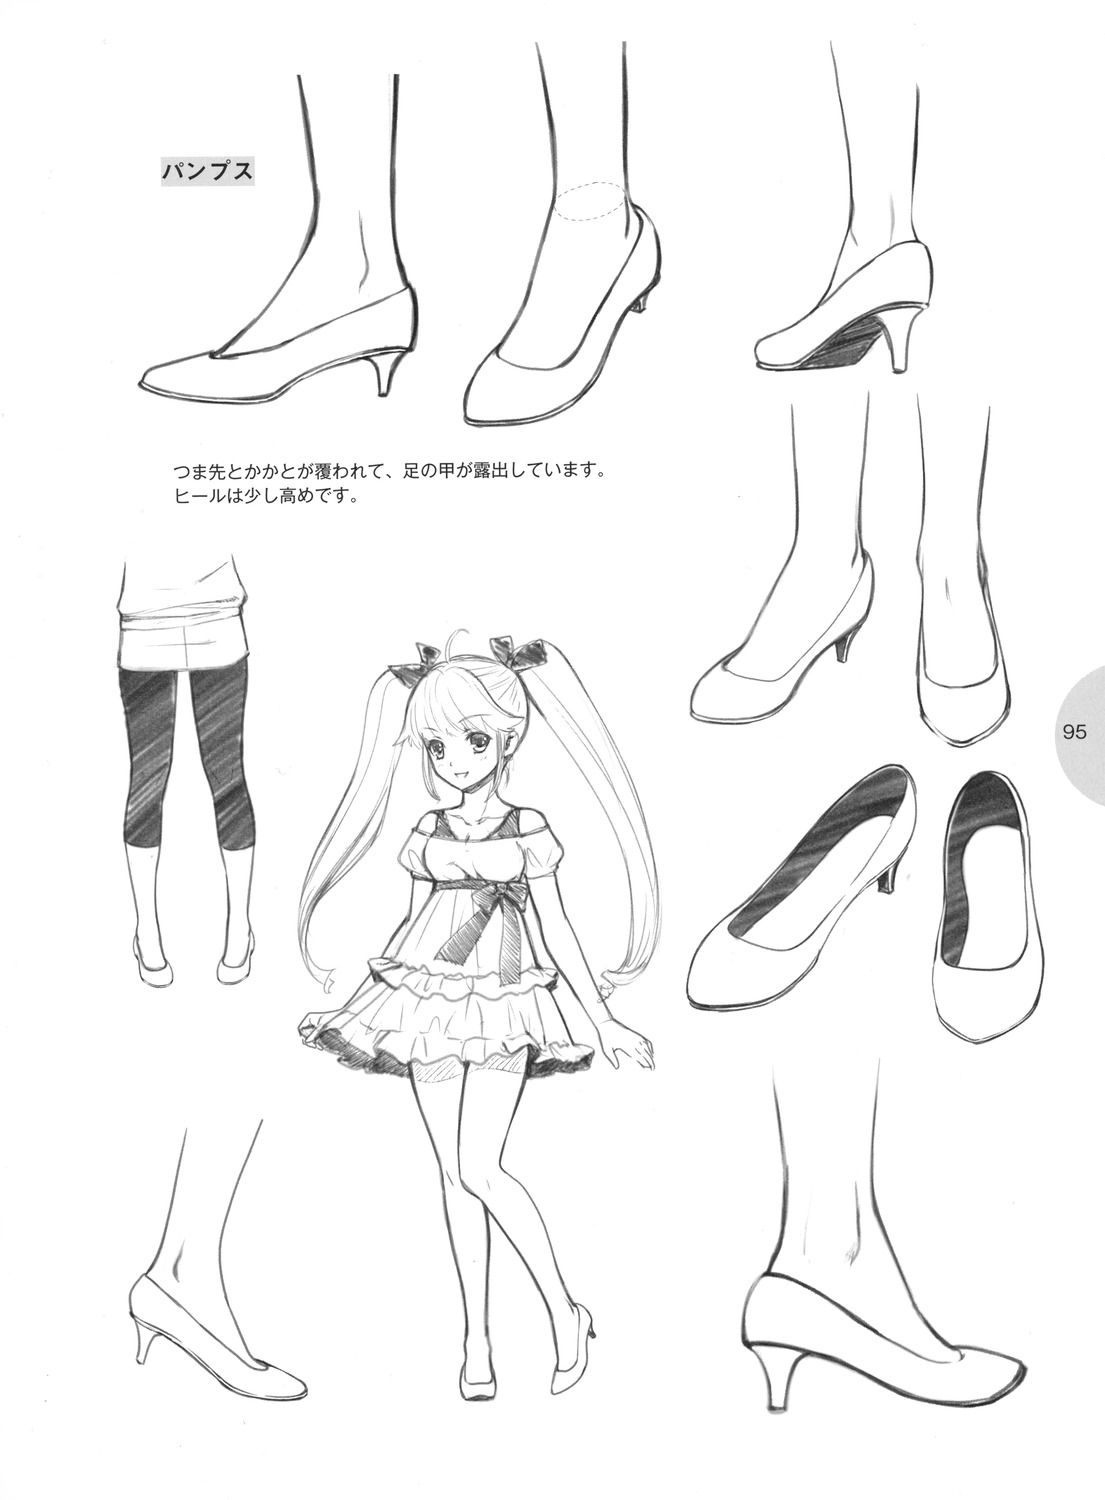 How To Draw Shoes On A Person : shoes, person, 部屋, Knickerweasels:, Drawing, Shoes, From..., Person, Drawing,, Anime, Drawings,, Drawings